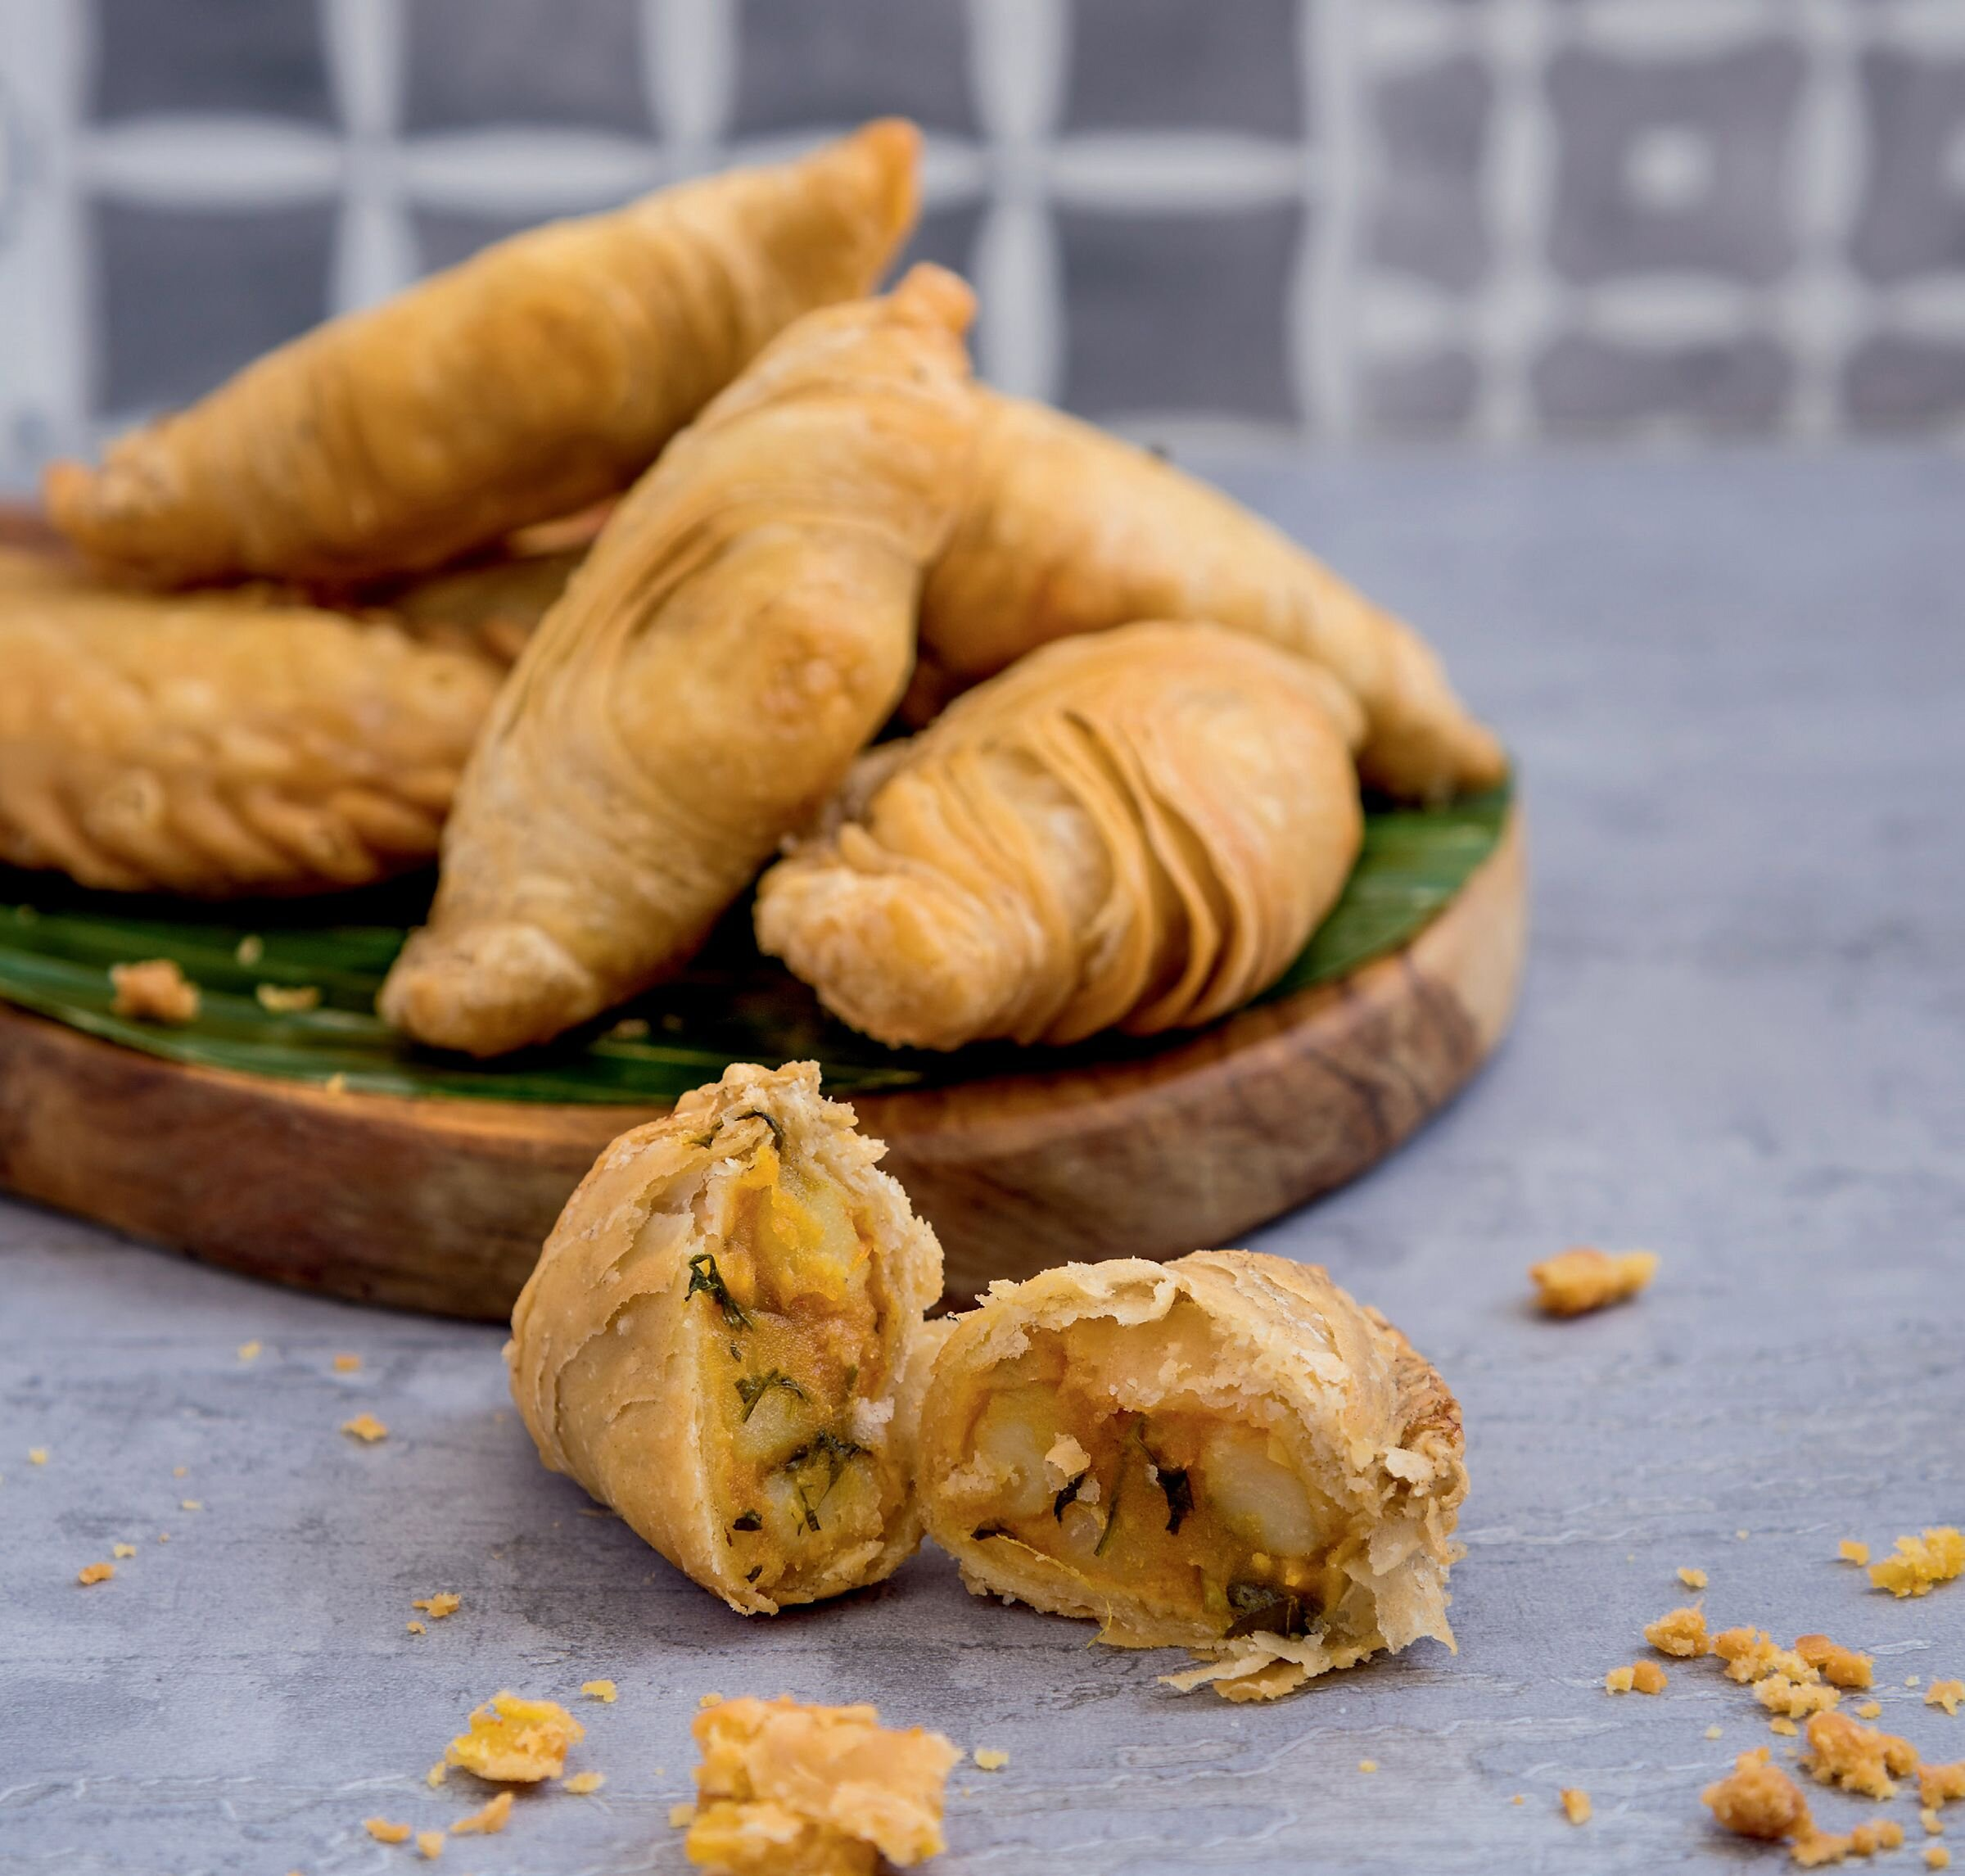 The key to Zaleha's Curry Puffs is getting the thin, flaky pastry just right.